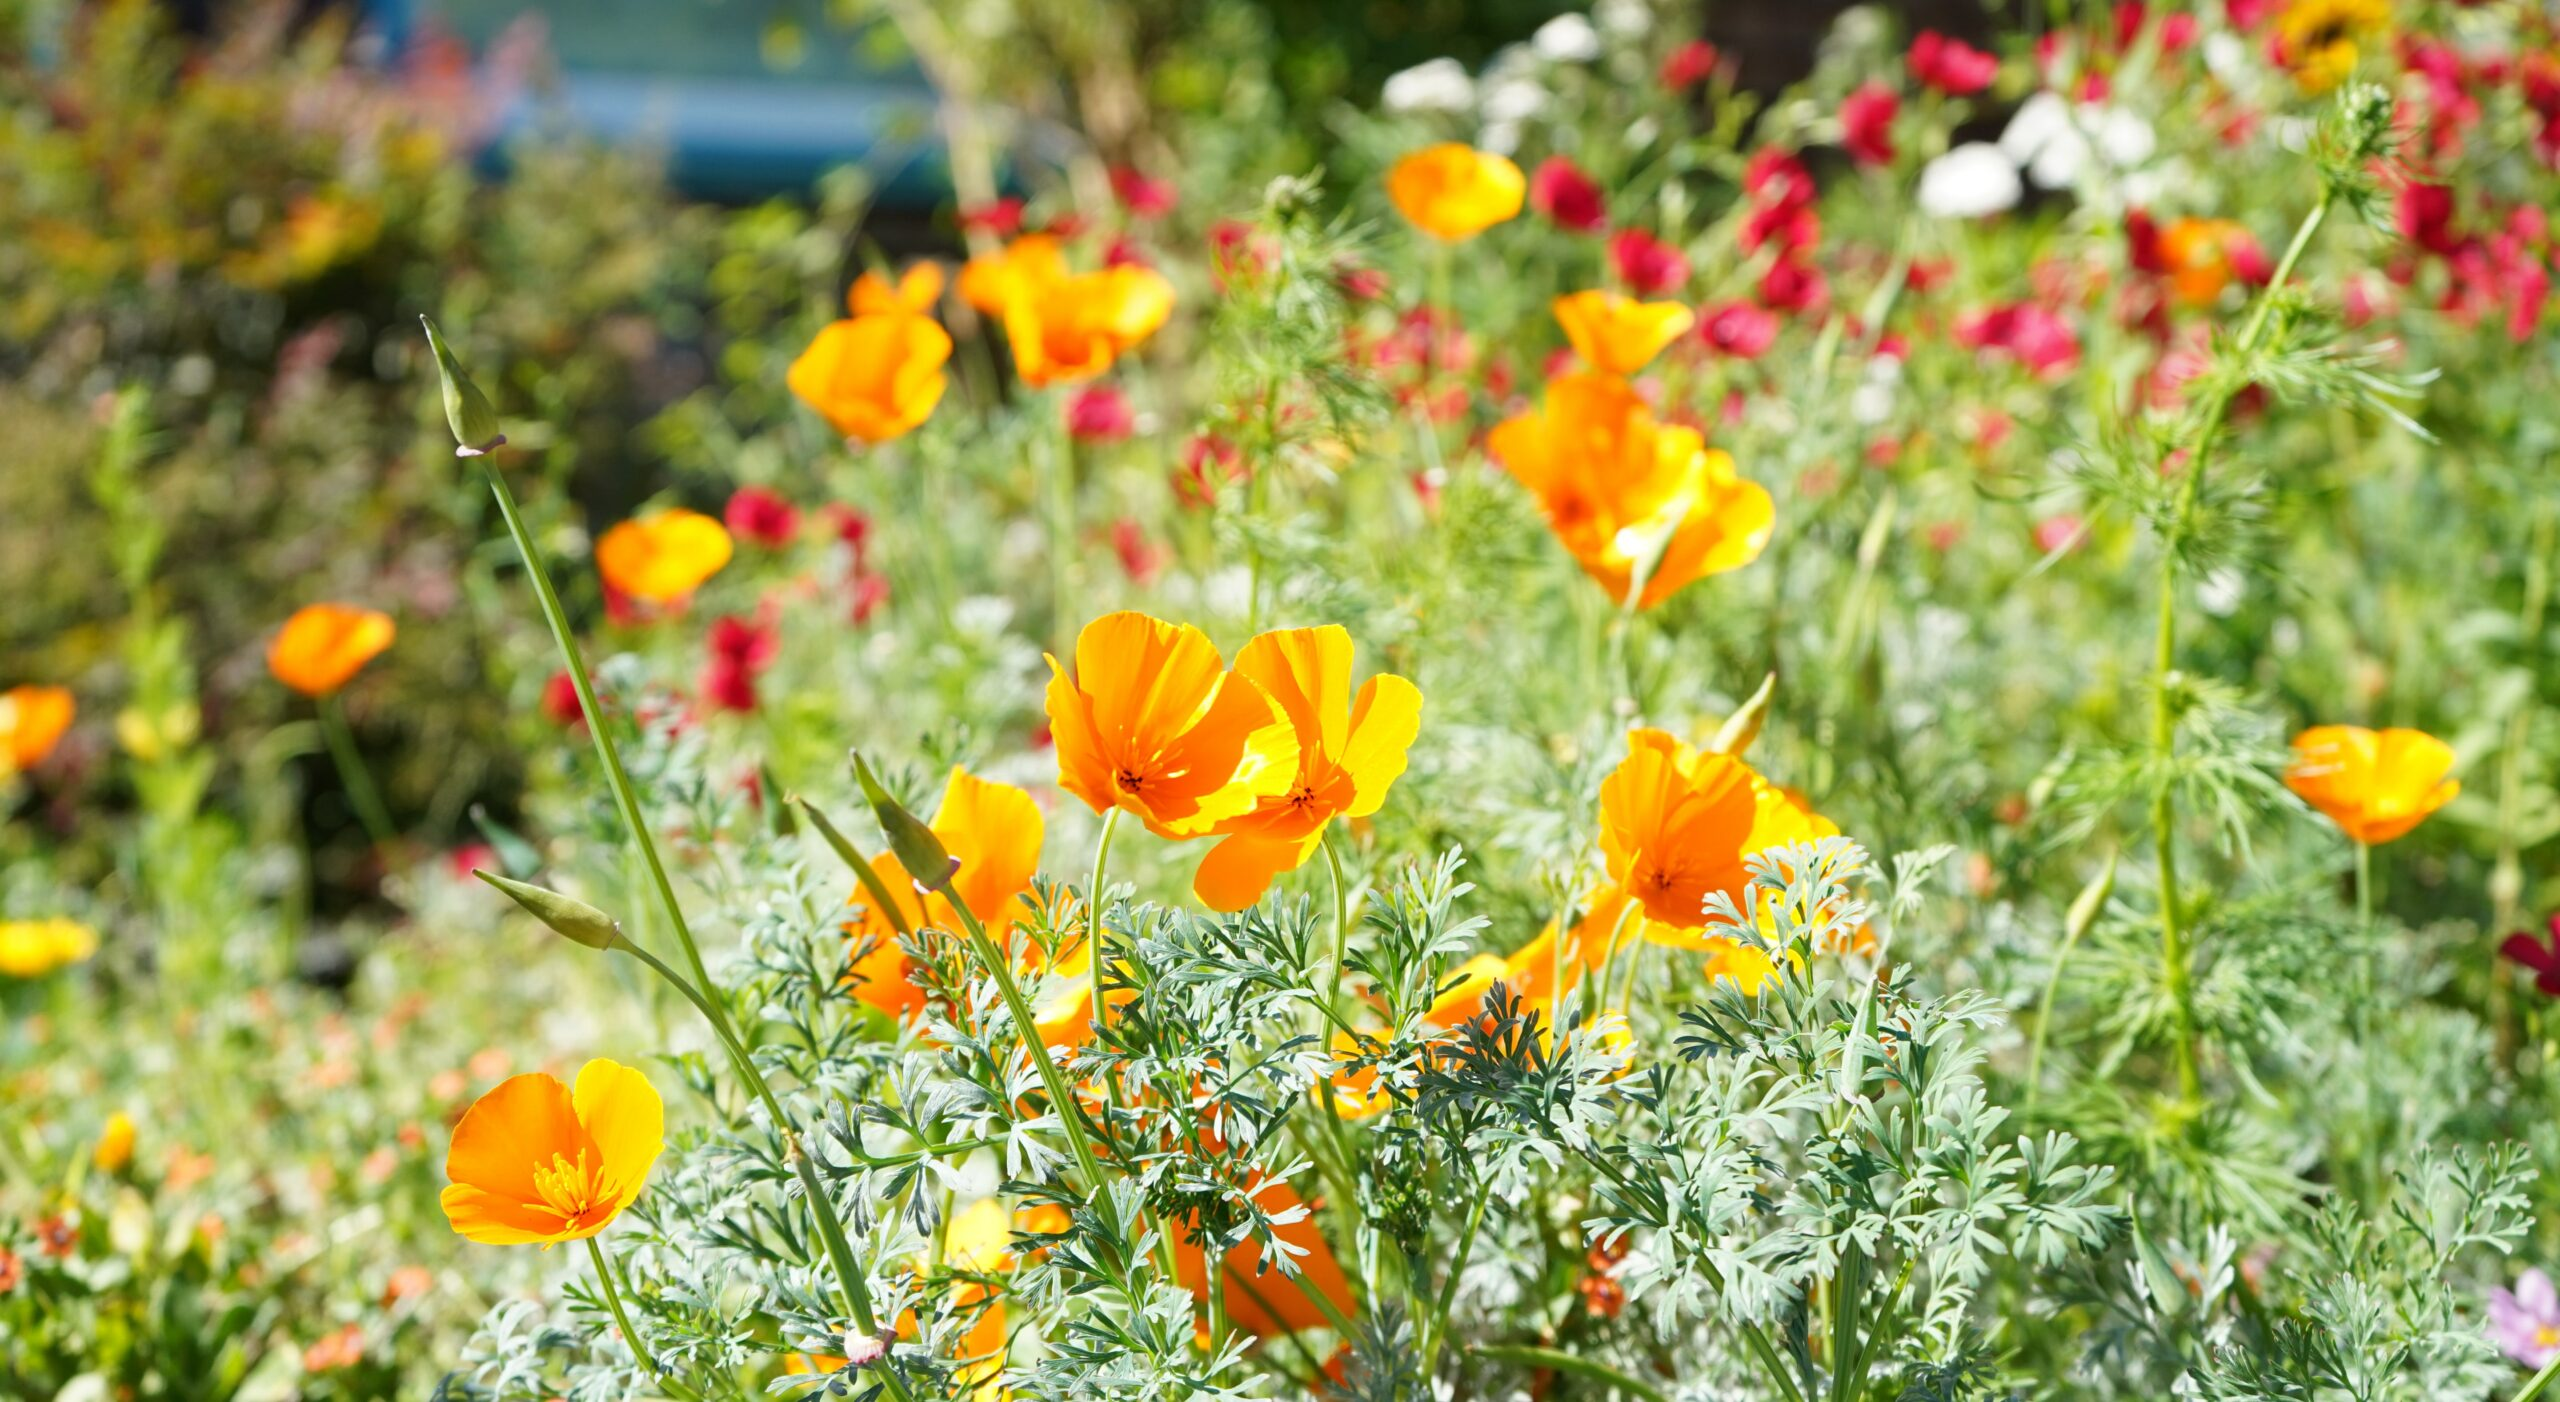 Orange California poppies in a beautifully overgrown garden.